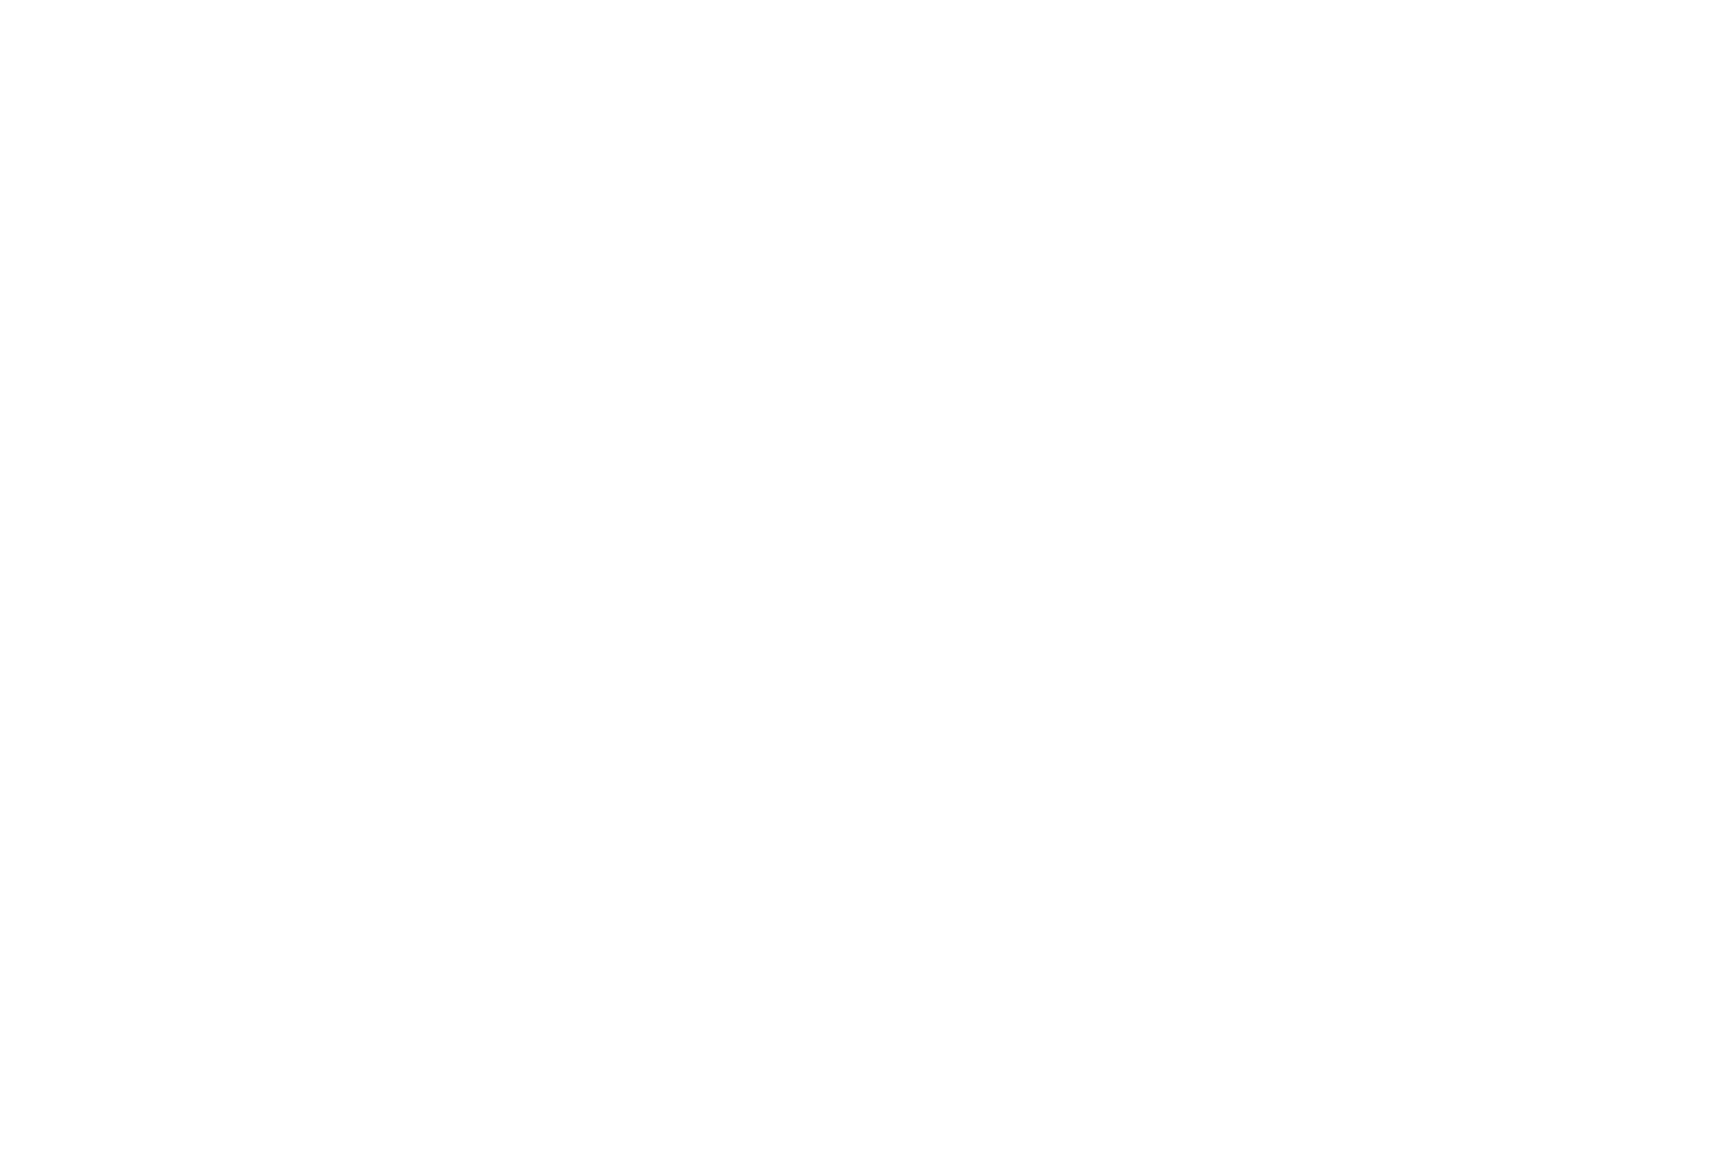 WINNER - Indiana Association of School Broadcasters - In-Depth Story (1).png